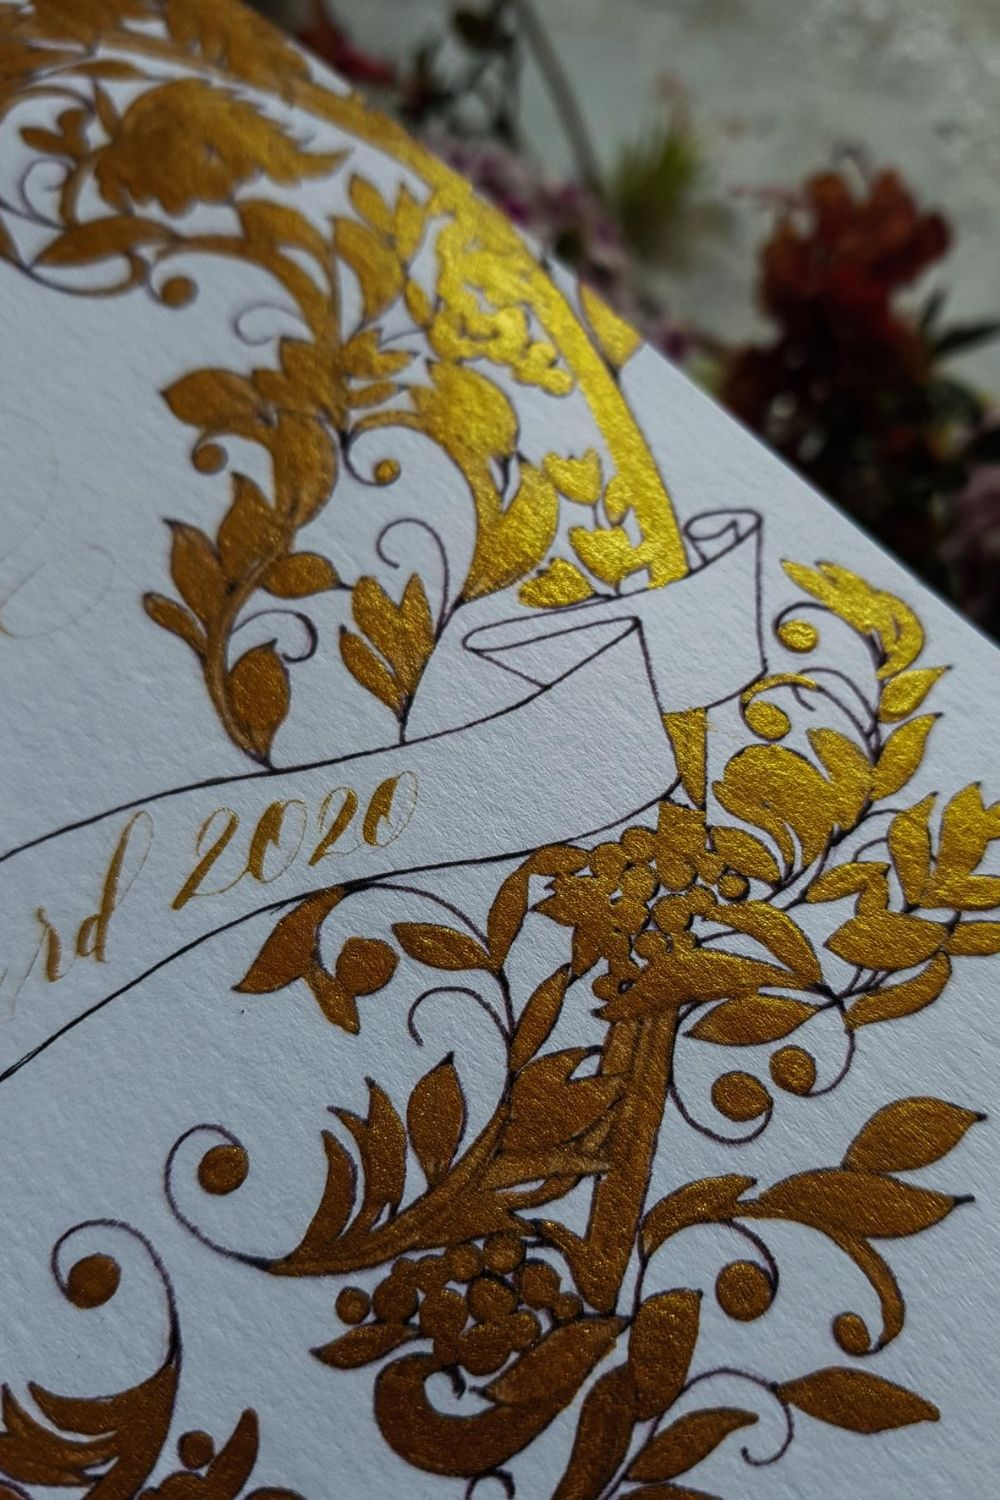 Wedding menu close up detail of a gold crest design with a black outline